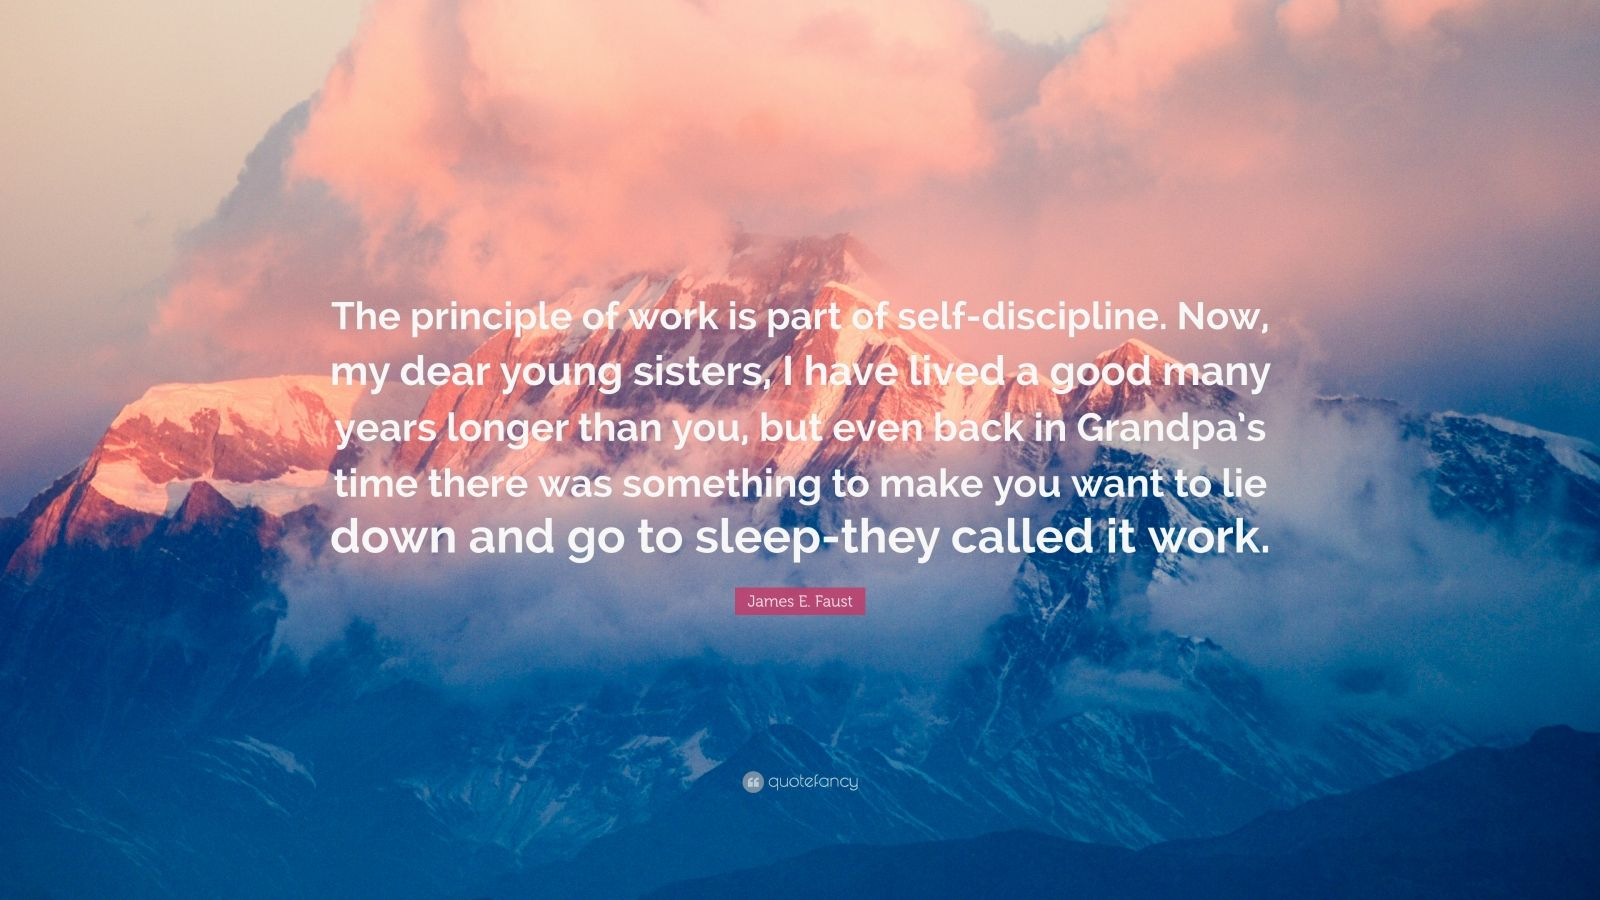 "James E. Faust Quote: ""The principle of work is part of self-discipline. Now, my dear young sisters, I have lived a good many years longer than you, but even back in Grandpa's time there was something to make you want to lie down and go to sleep-they called it work."""